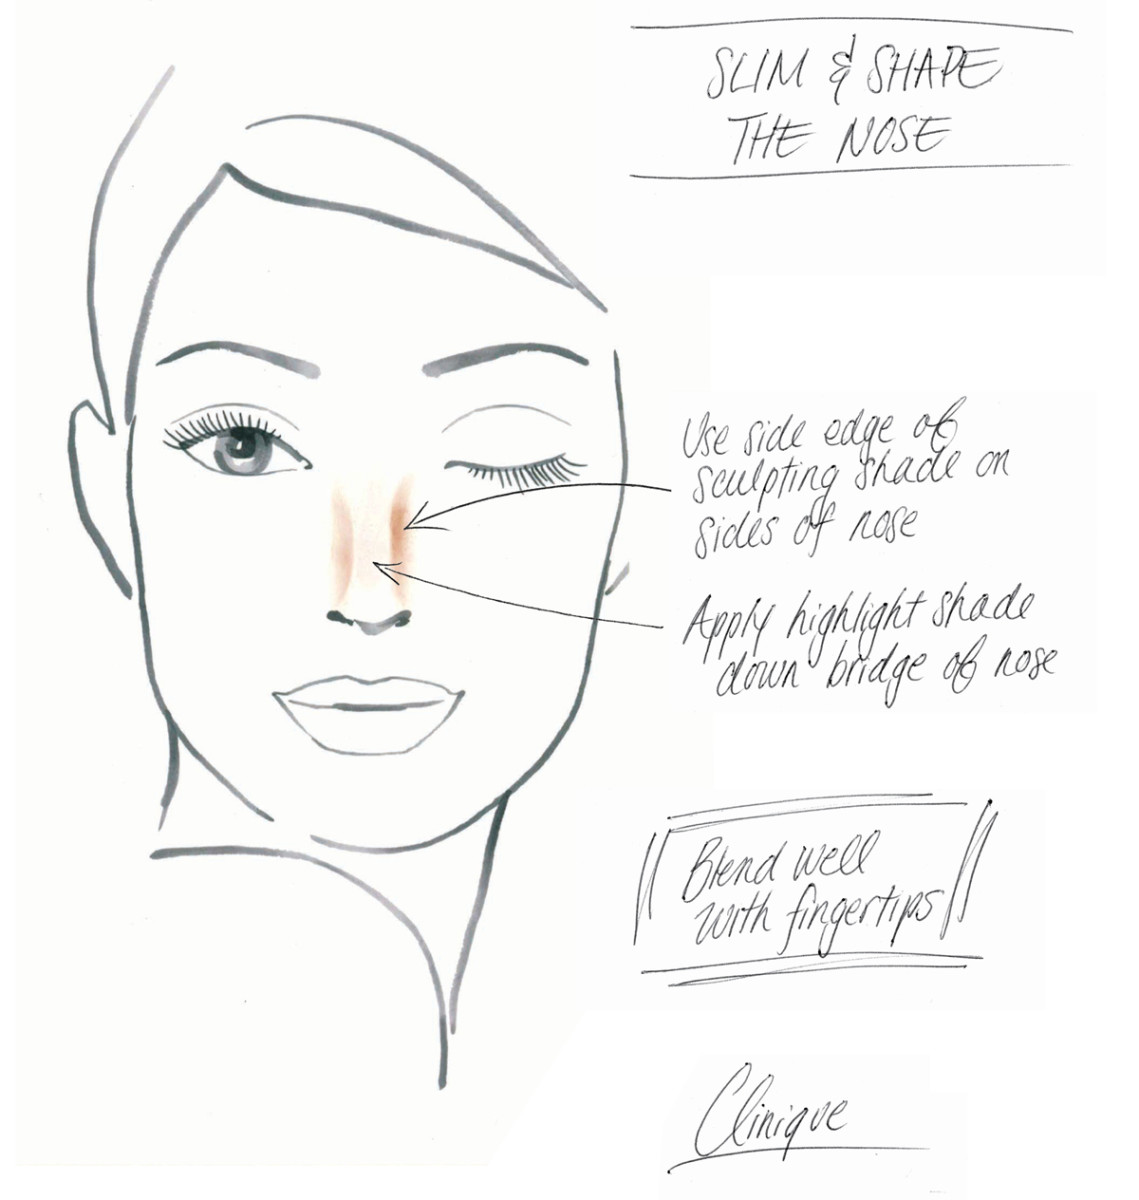 Clinique Chubby Stick Sculpting Highlight and Contour_how to slip and shape the nose